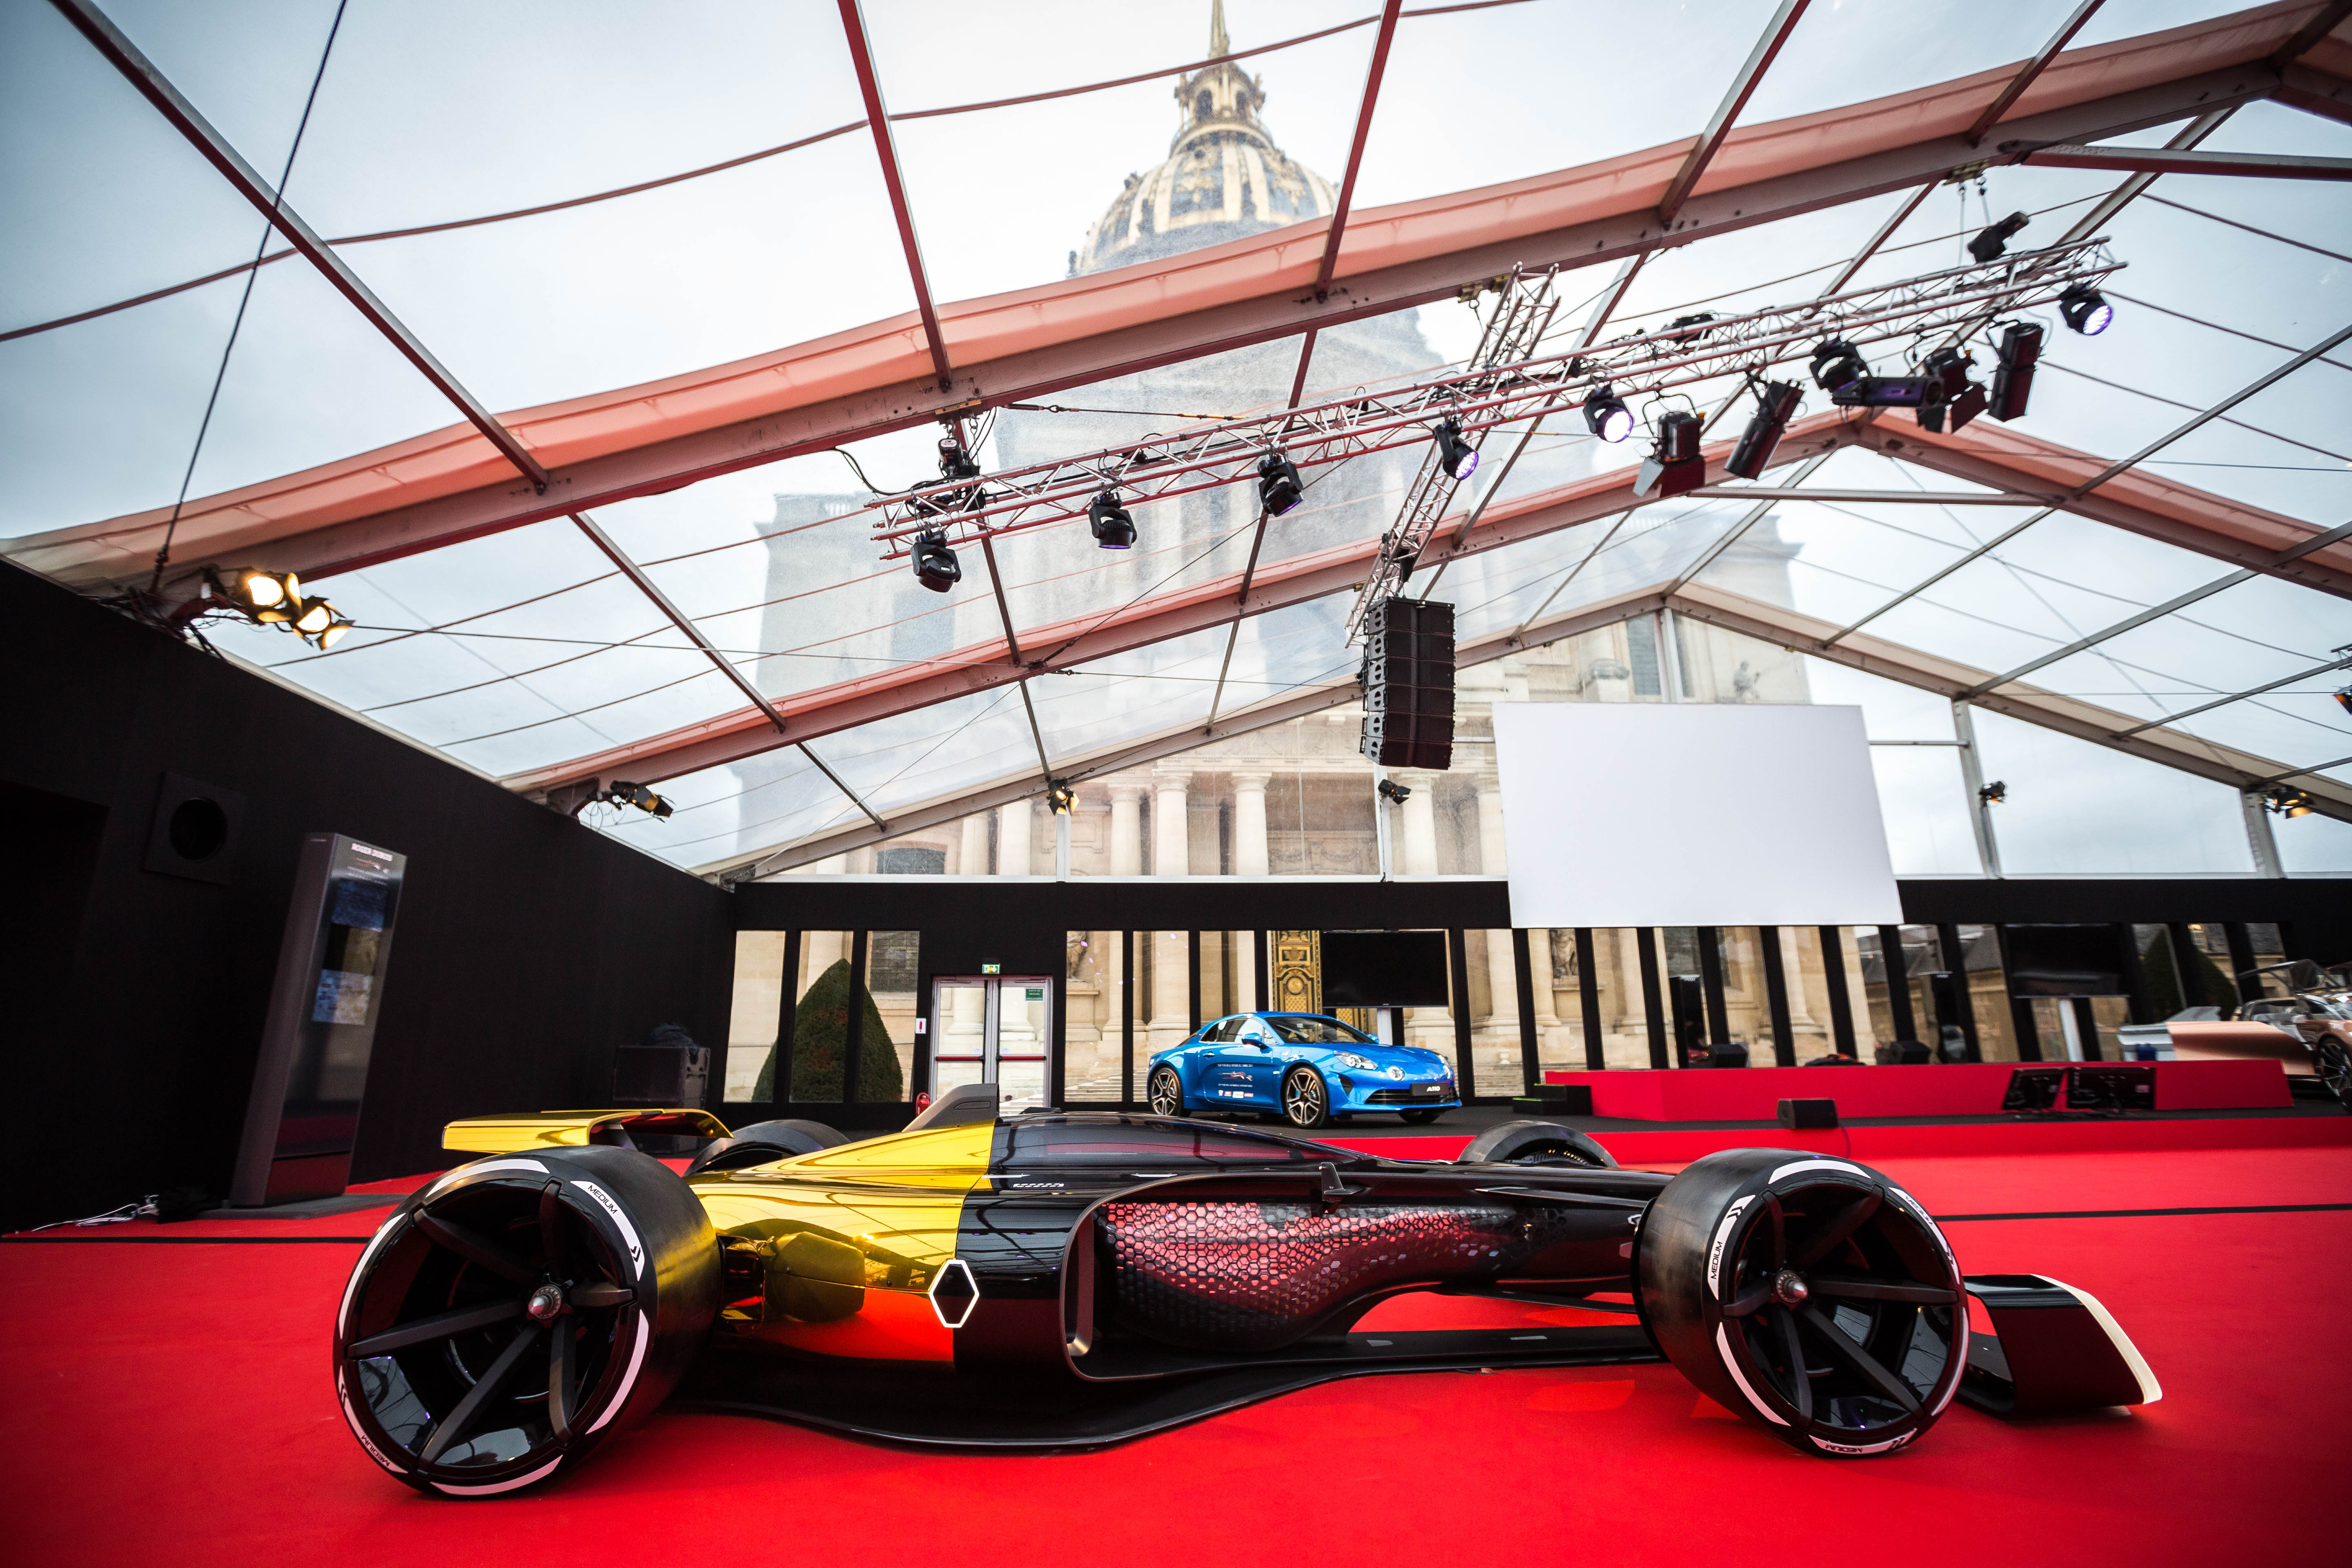 Discover The Backstage Of Concept Cars Design Automobile - Exhibition car